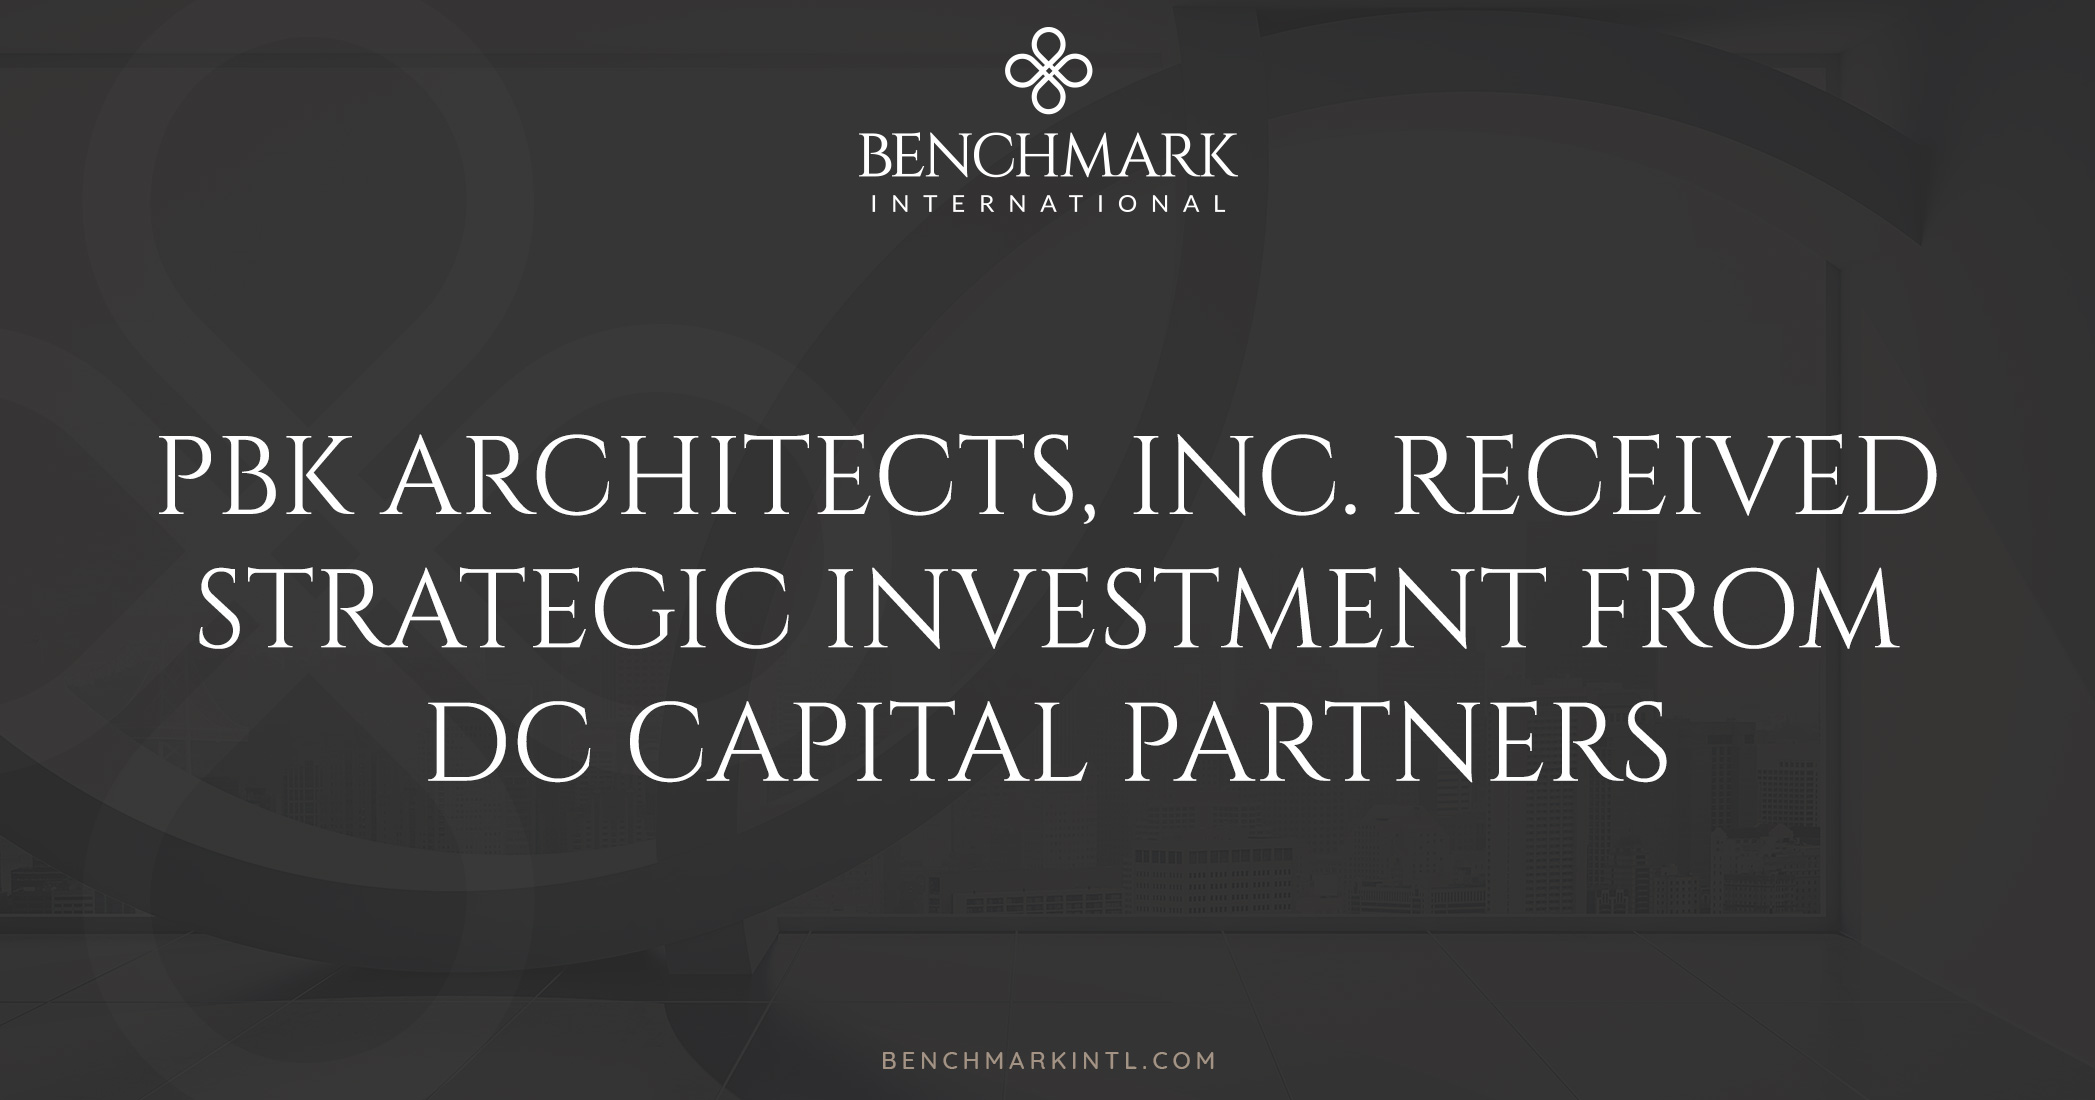 PBK Architects, Inc. Received Strategic Investment from DC Capital Partners